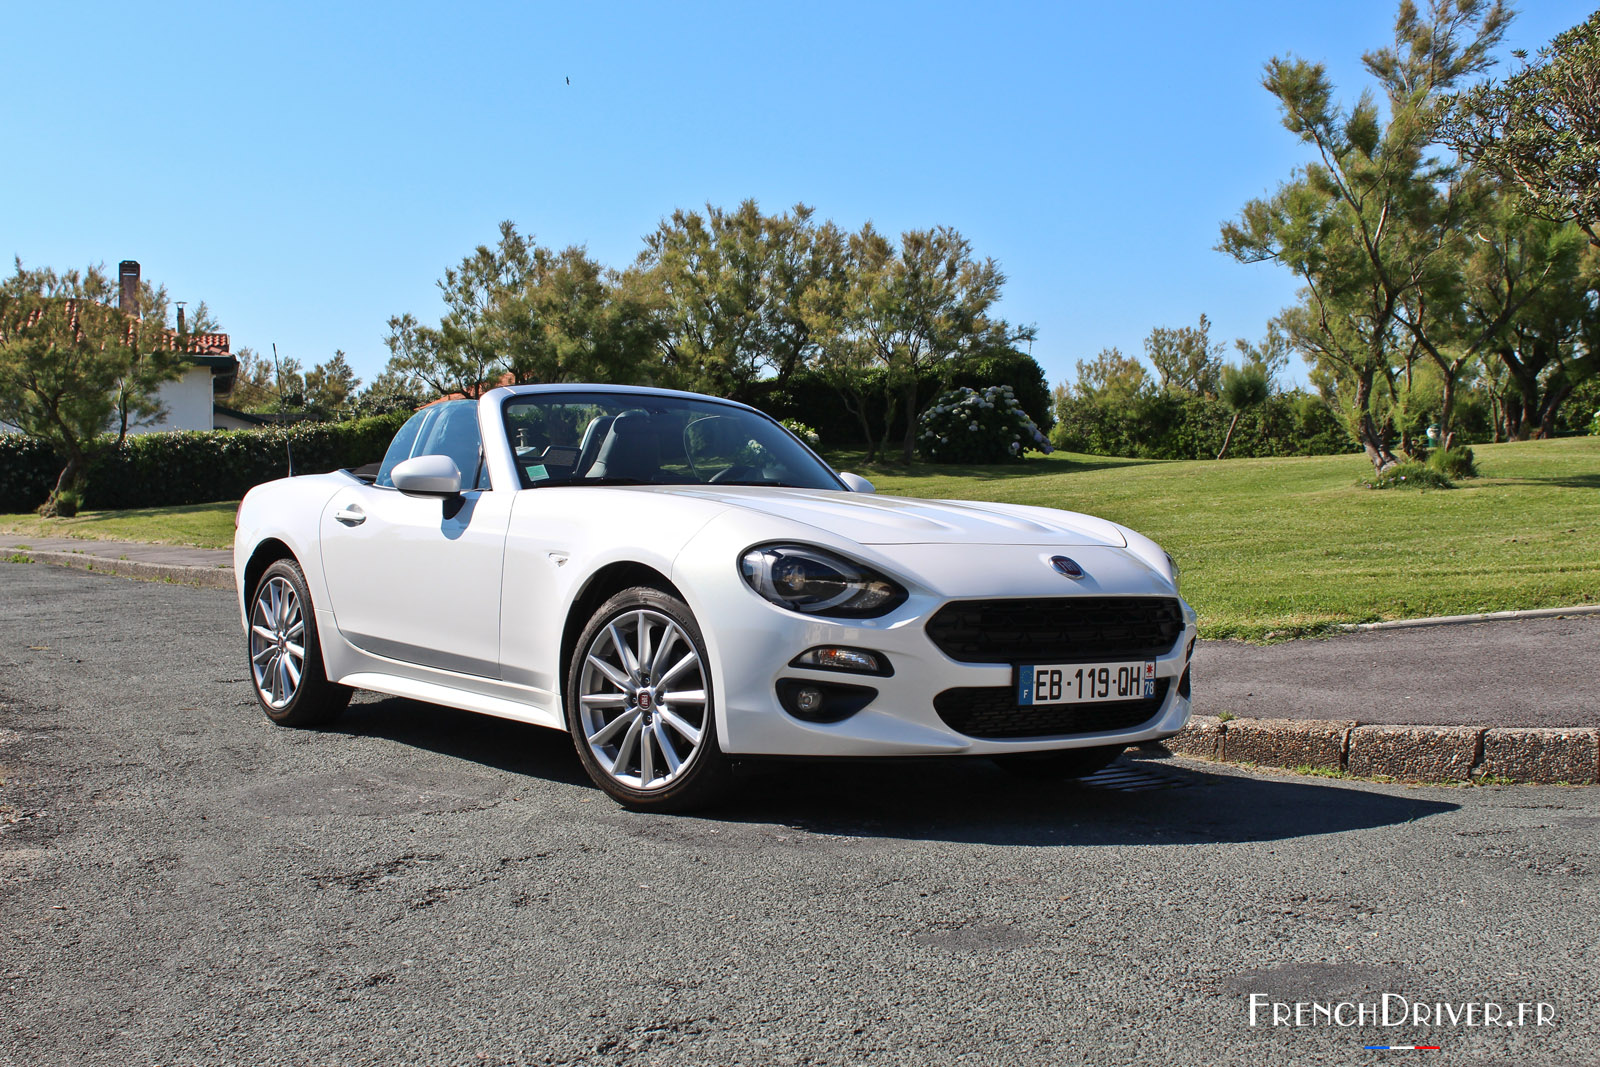 essai de la fiat 124 spider 2016 le nouveau cabriolet de l 39 t french driver. Black Bedroom Furniture Sets. Home Design Ideas